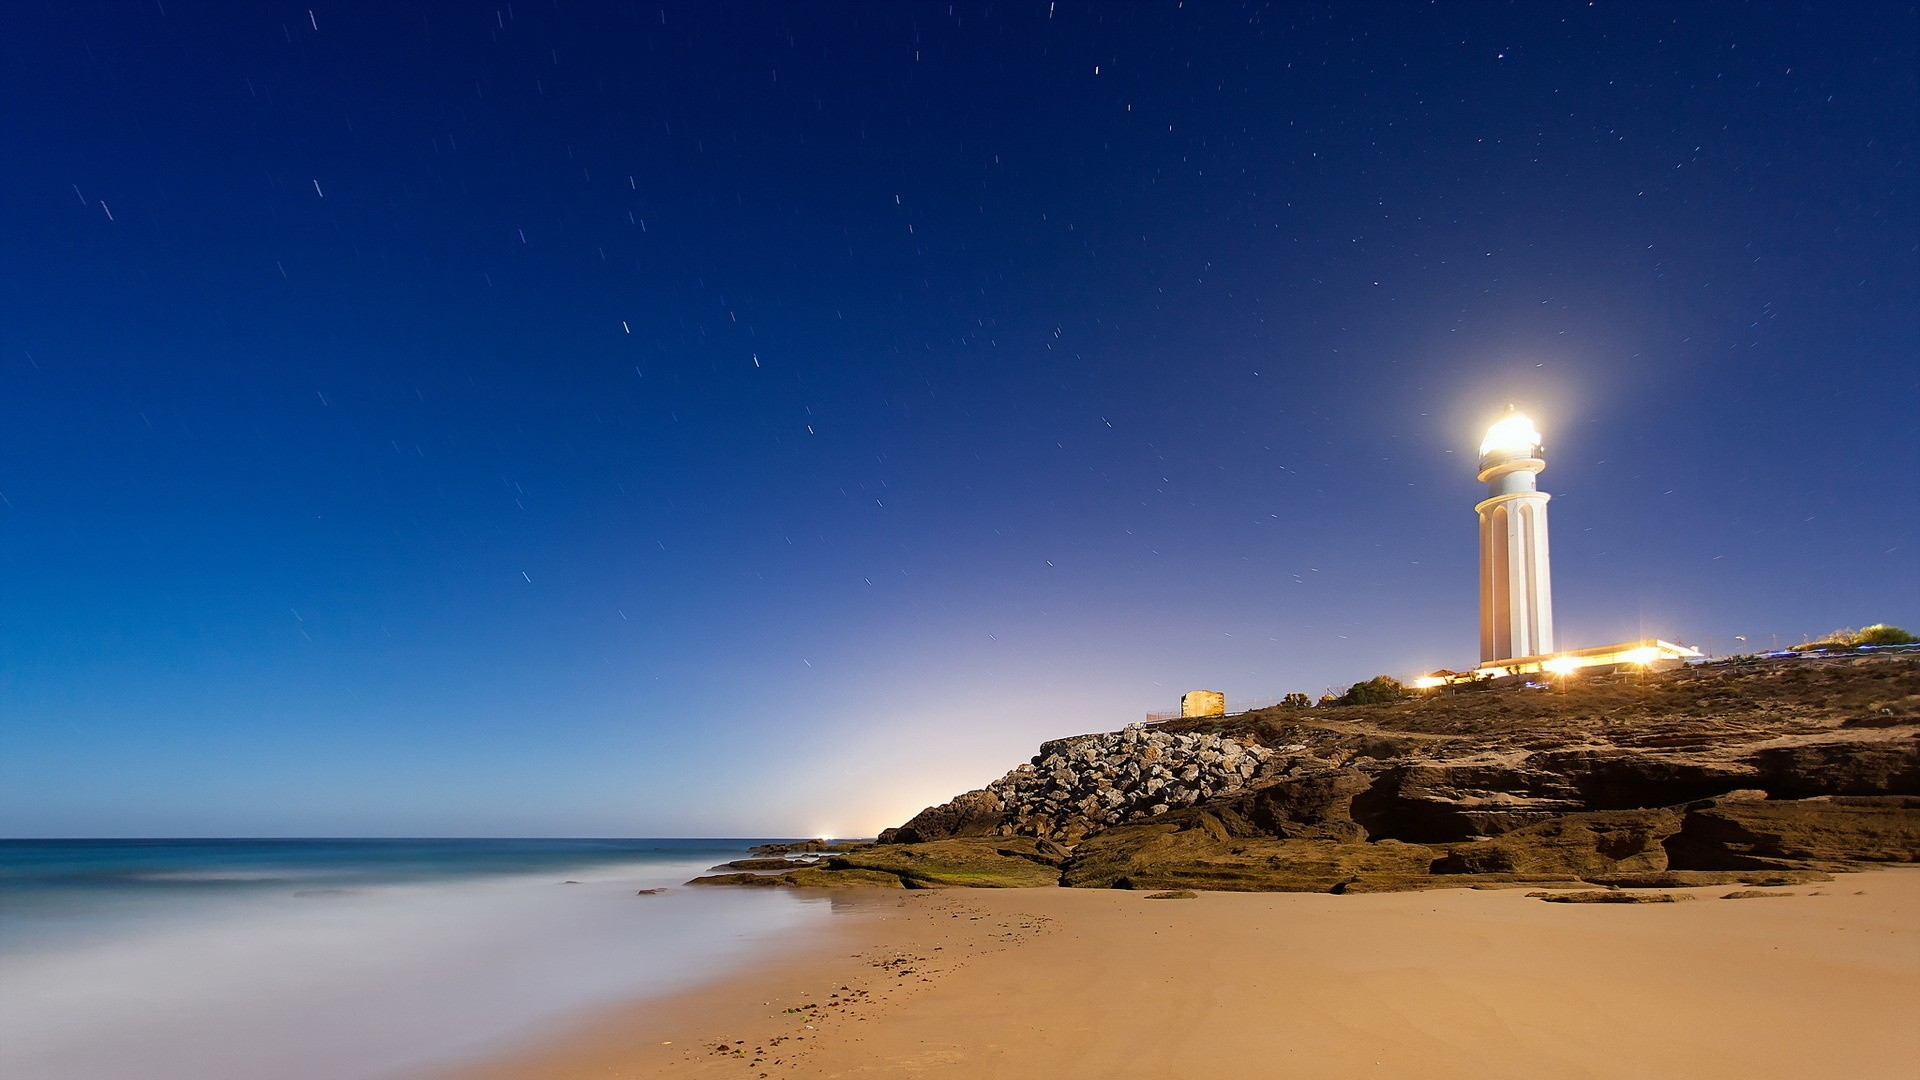 Popular Wallpaper Night Lighthouse - bright-lighthouse-at-night-1920x1080-wallpaper  Pictures-79564.jpg